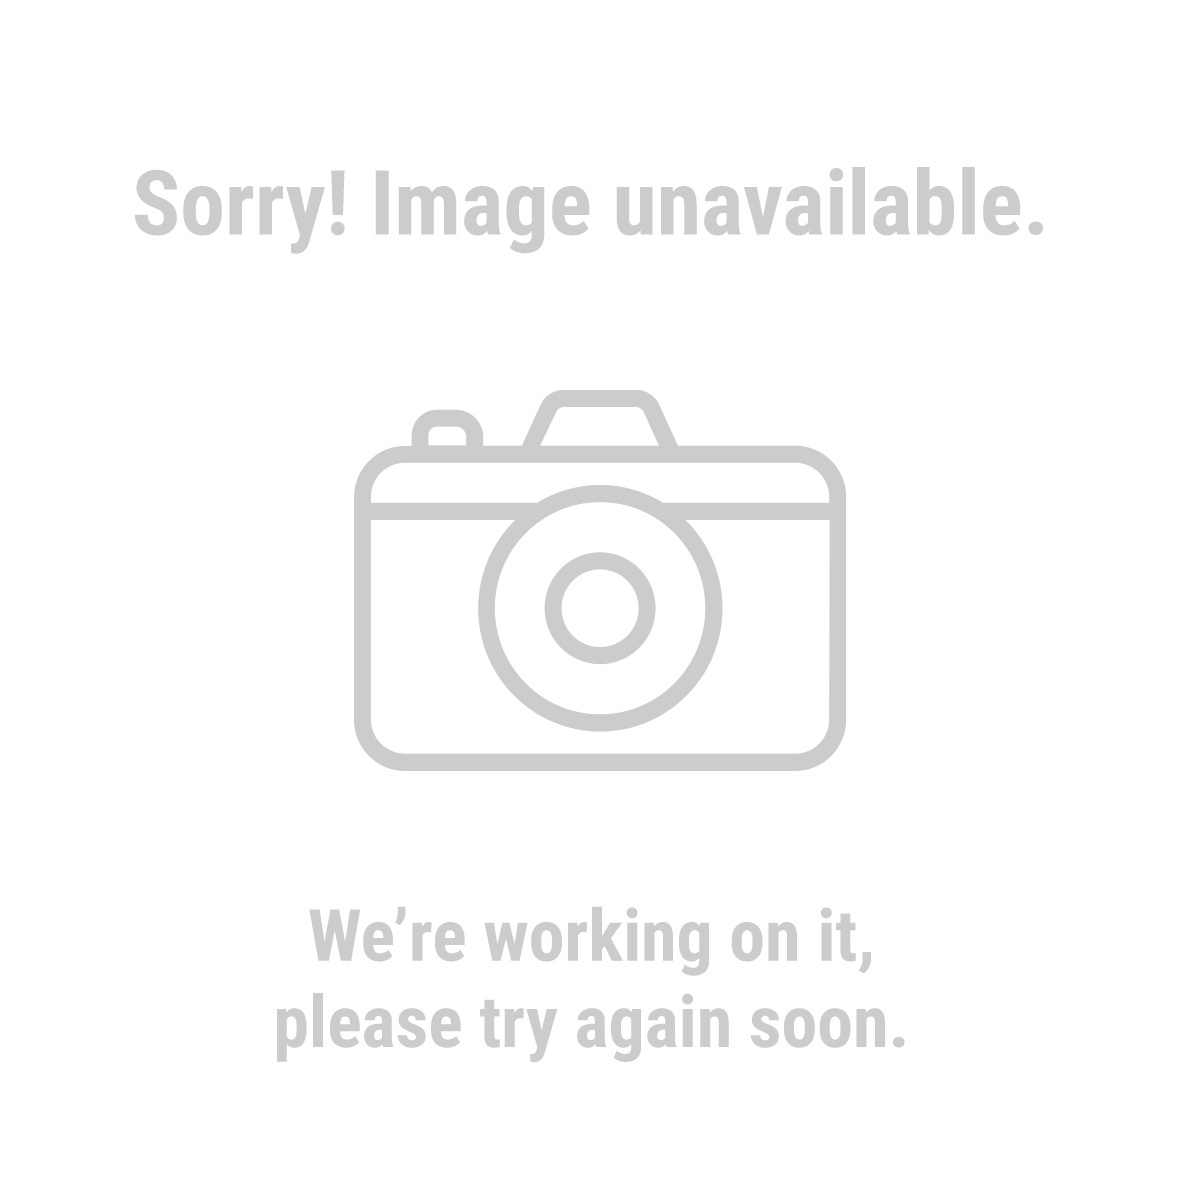 Warrior® 1903 7 Piece Forstner Bit Set